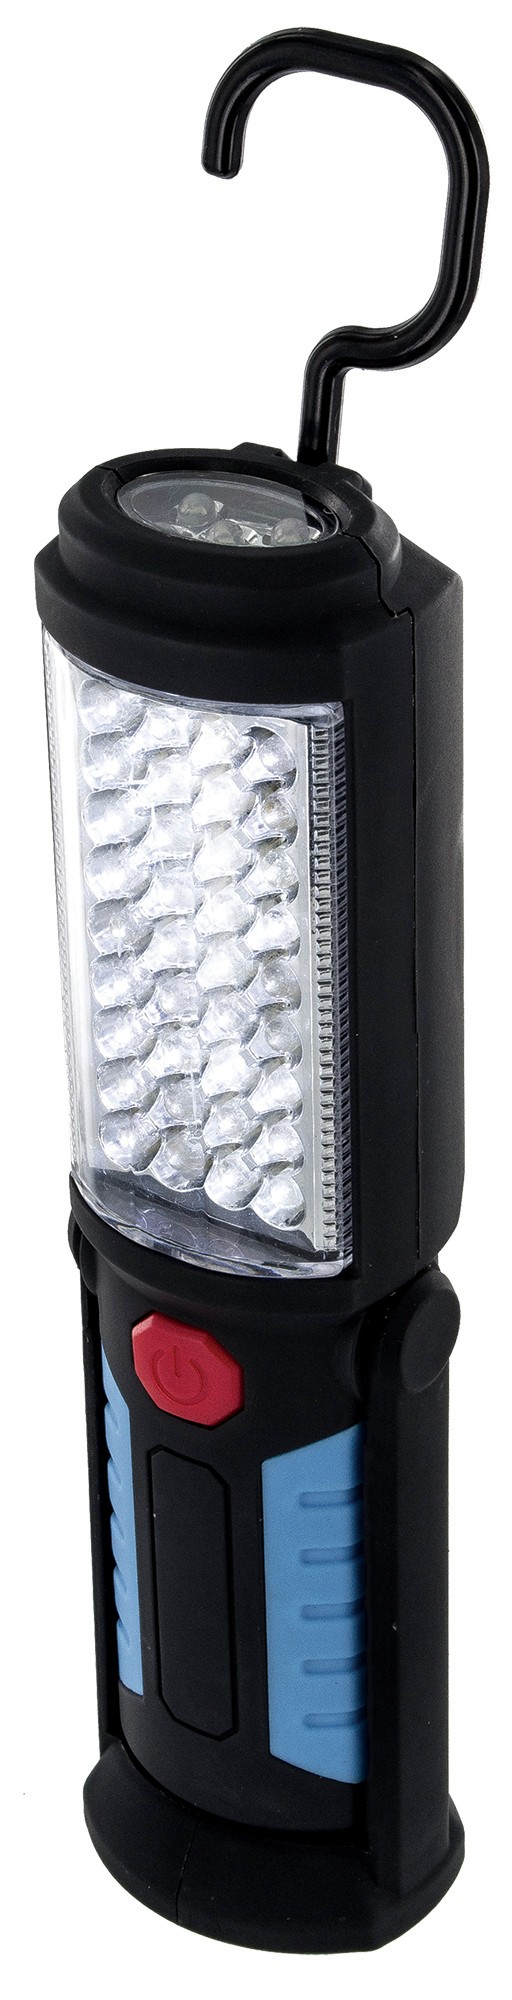 Work light with magnets a portable cordless battery operated 41 led work light can be